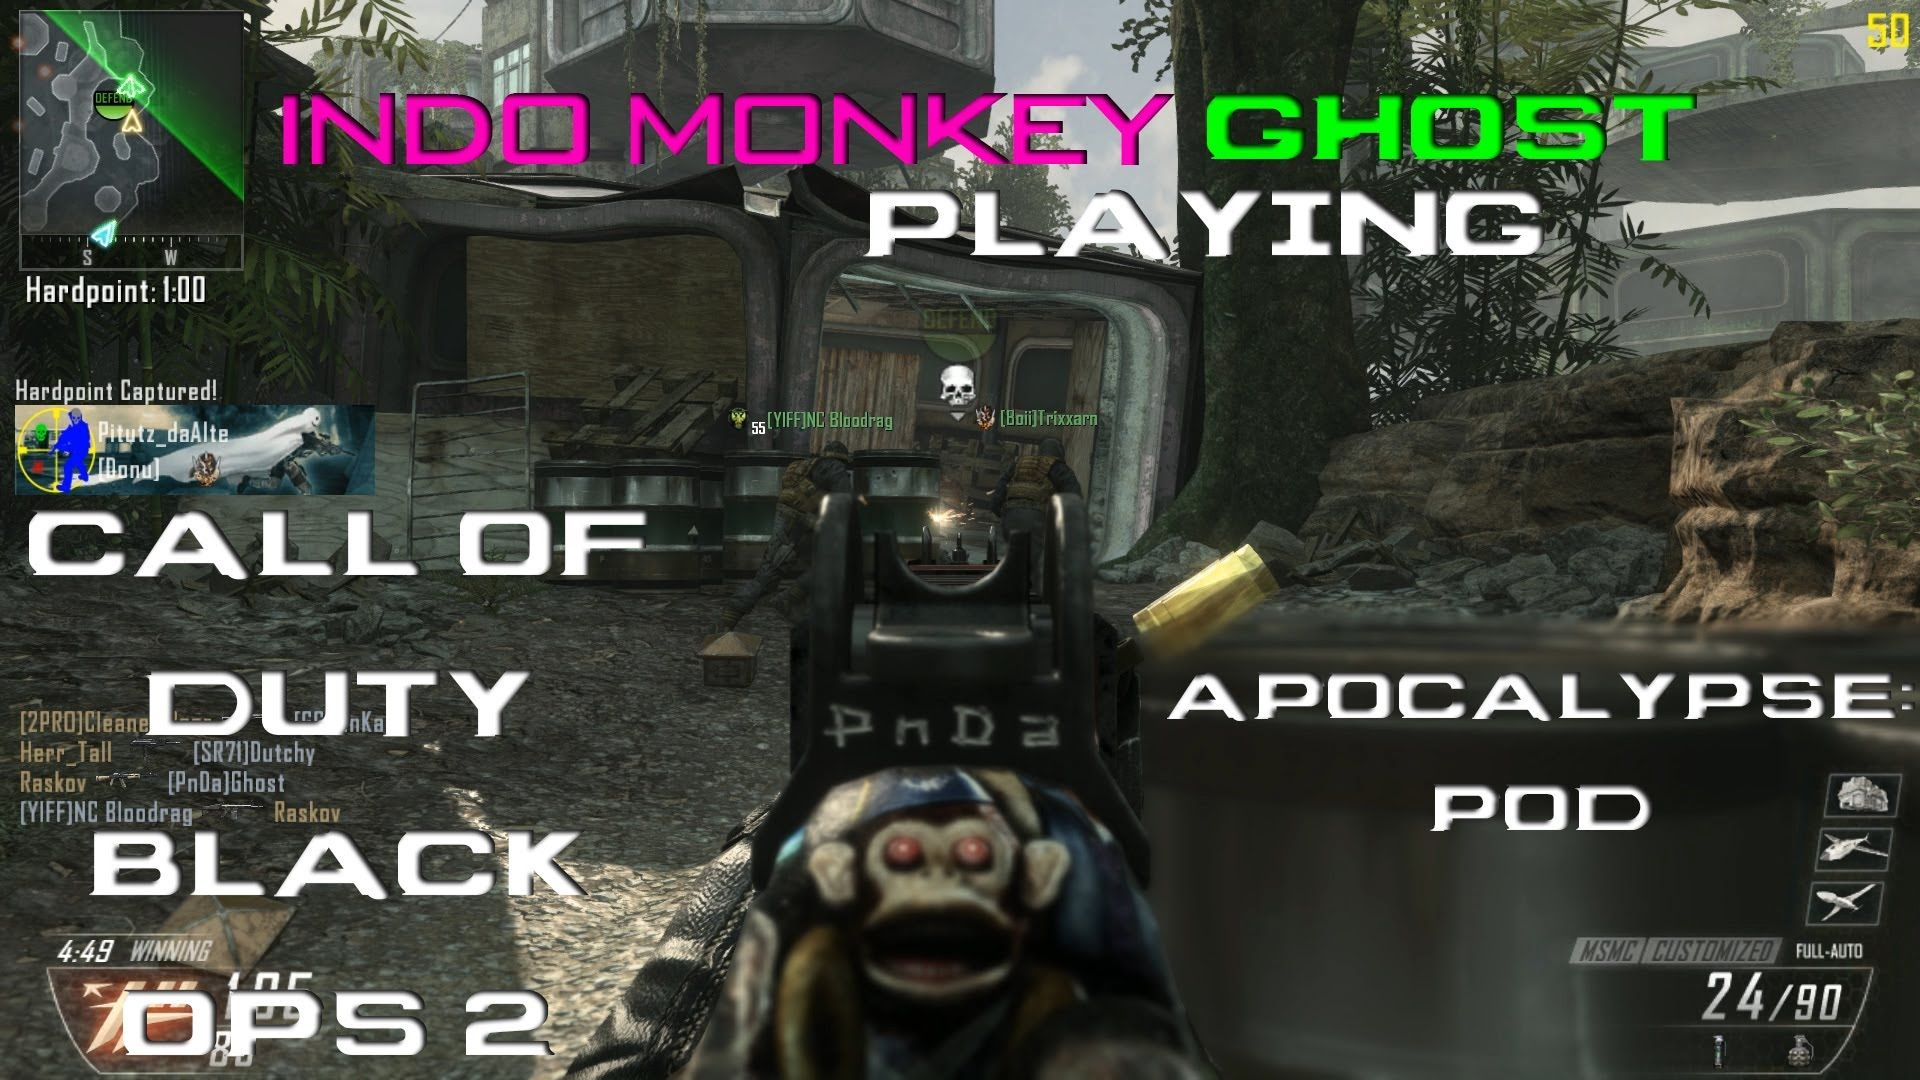 Call Of Duty Black Ops 2 Dlc Map Pack Apocalypse Map Pod Mode